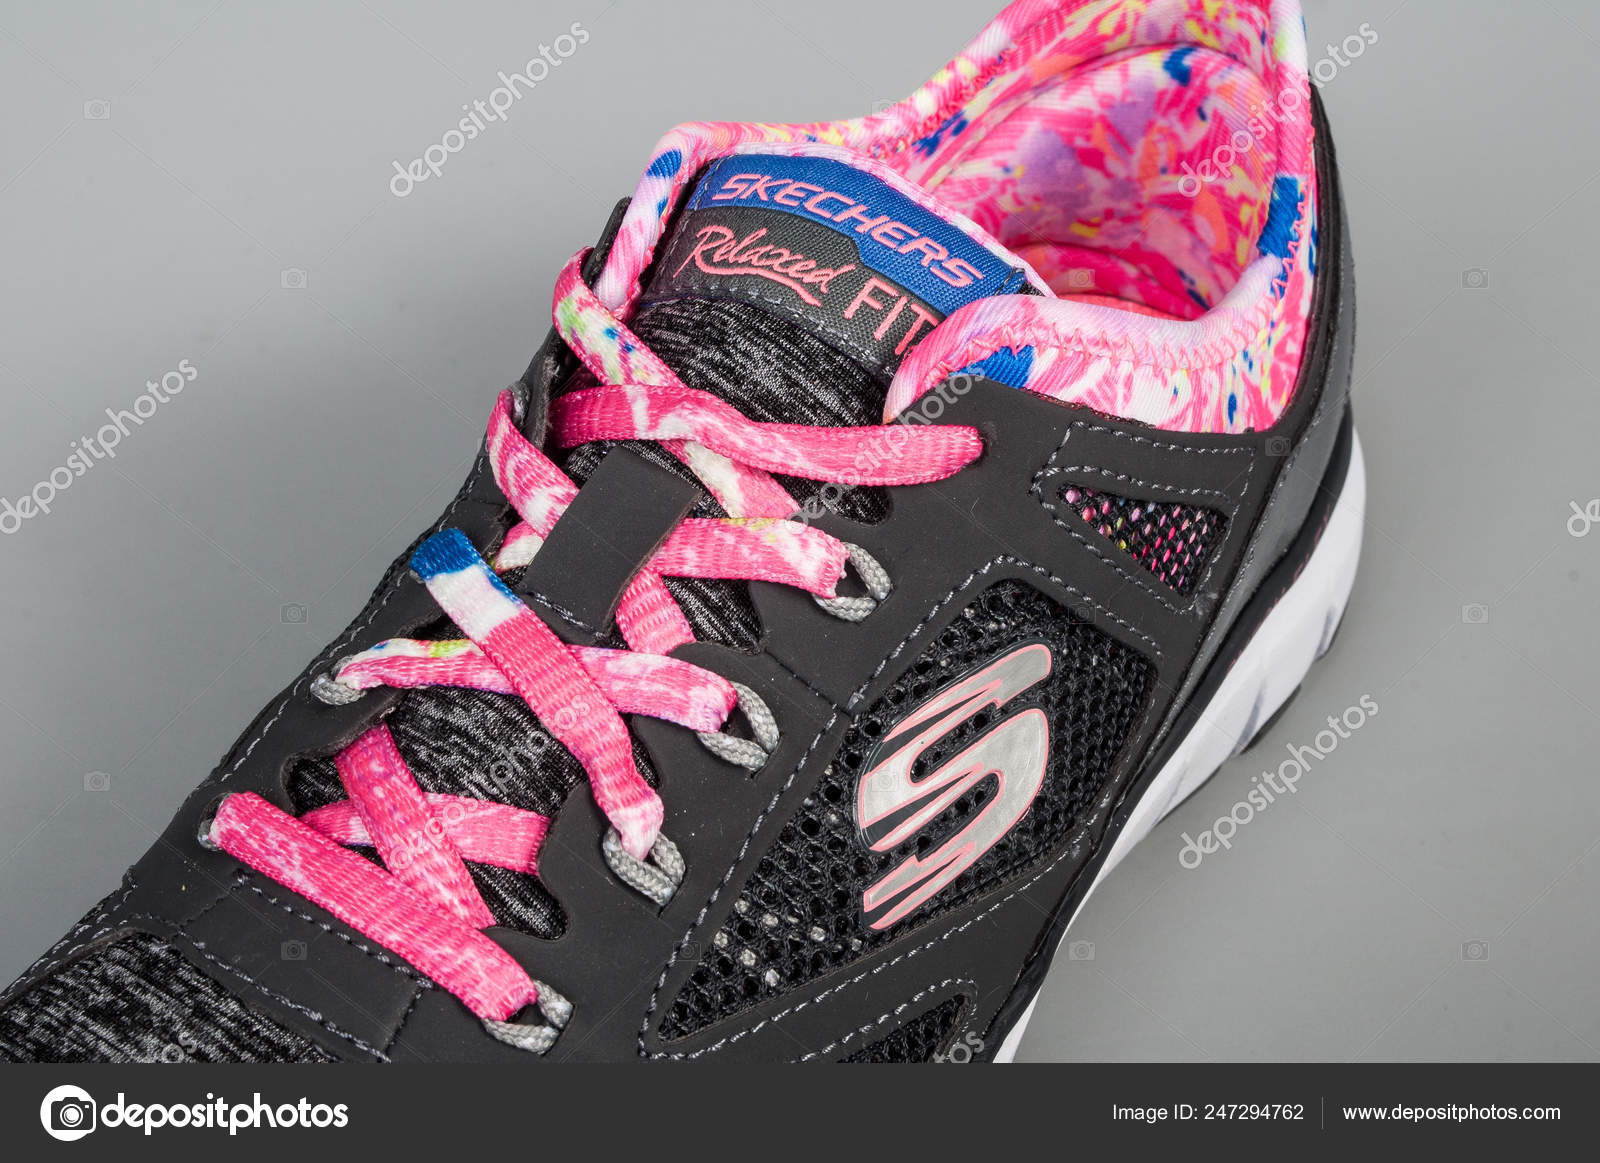 a095e890761b Medellin Colombia February 2019 Skechers Sports Shoes Gray Background —  Stock Photo